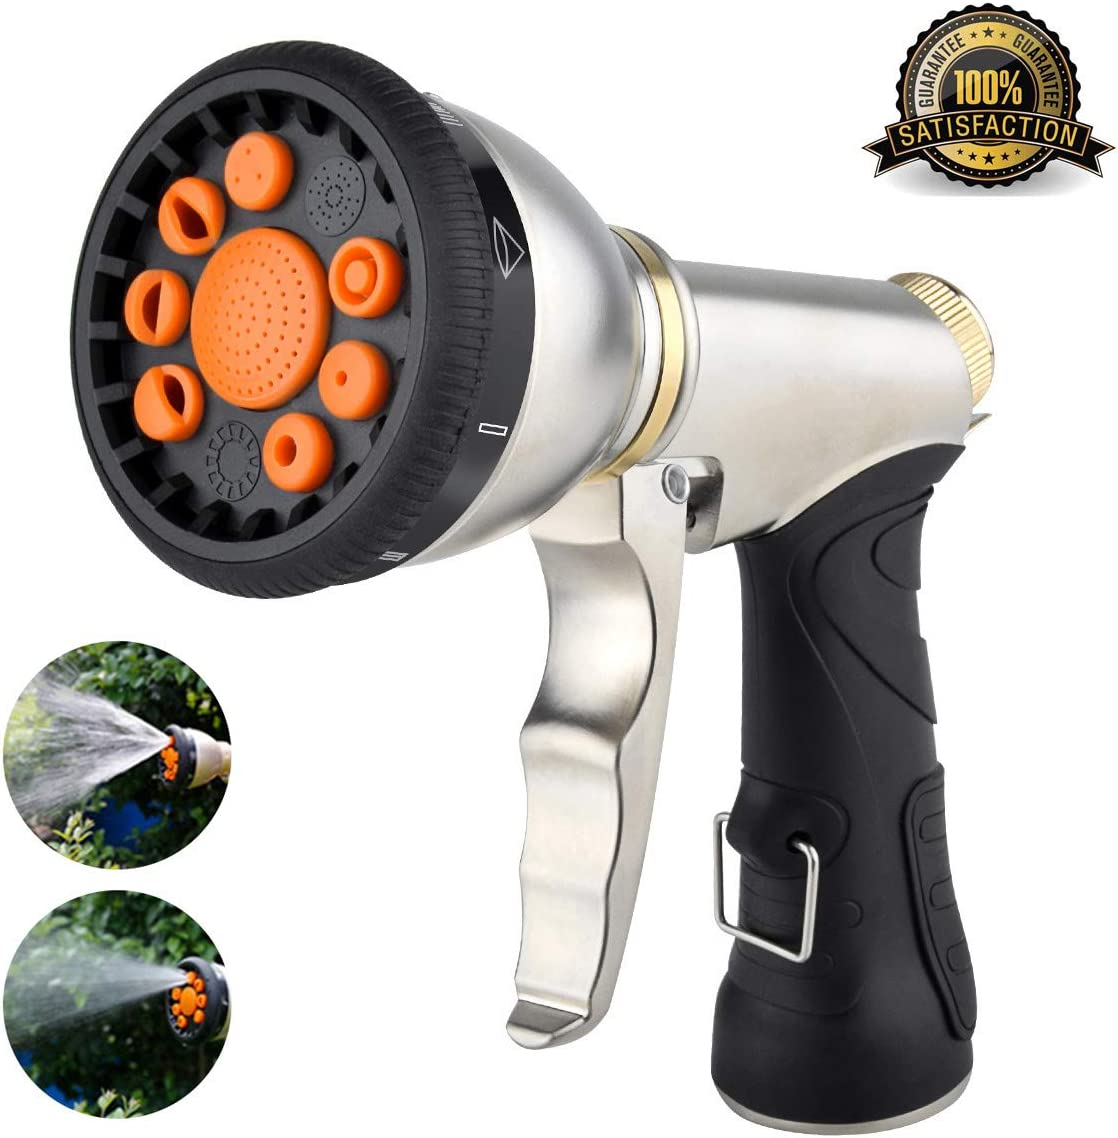 Hose Nozzle Garden Hose Nozzle Heavy Duty Metal Hose Spray Nozzle with 9 Adjustable Patterns Front Trigger Hose Sprayer Water Hose Nozzle for Cleaning, Watering Garden, Washing Cars, Bathing Pets